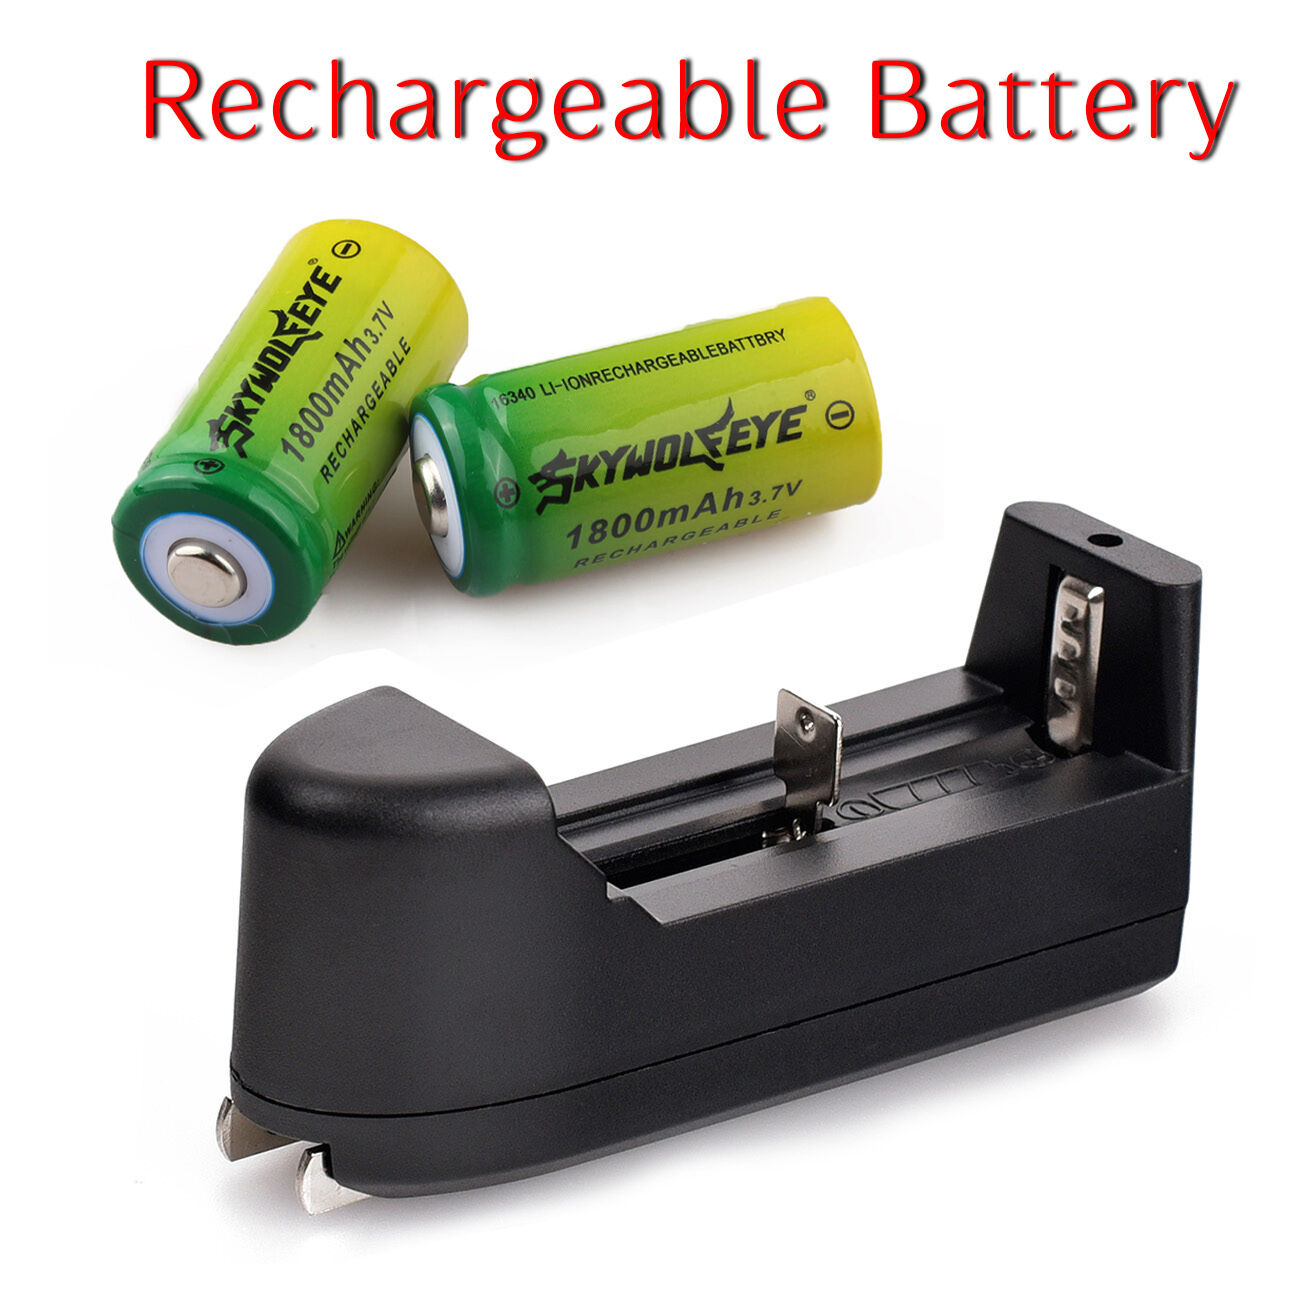 2x16340 cr123a 1800mah li ion rechargeable battery charger for camera flashlight ebay. Black Bedroom Furniture Sets. Home Design Ideas